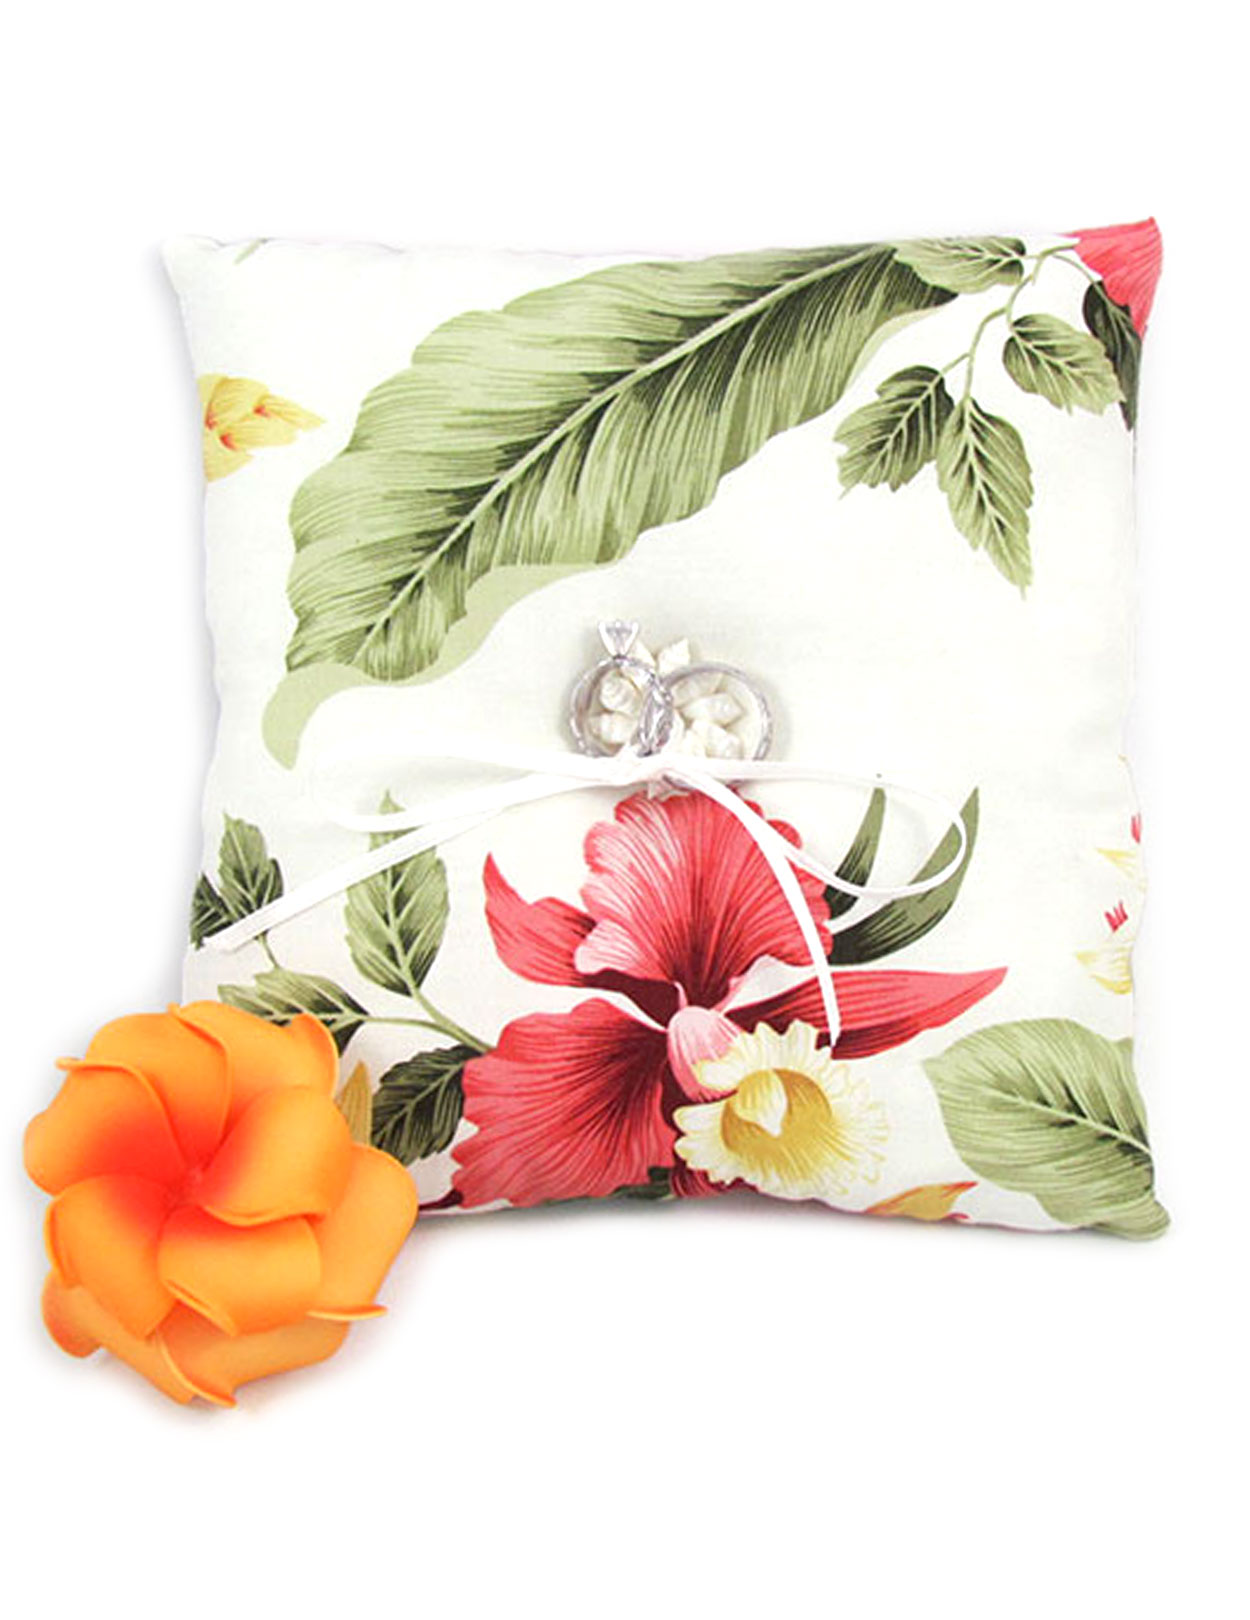 Orchid Pua Ring Bearer Pillow: Shaka Time Hawaii Clothing Store